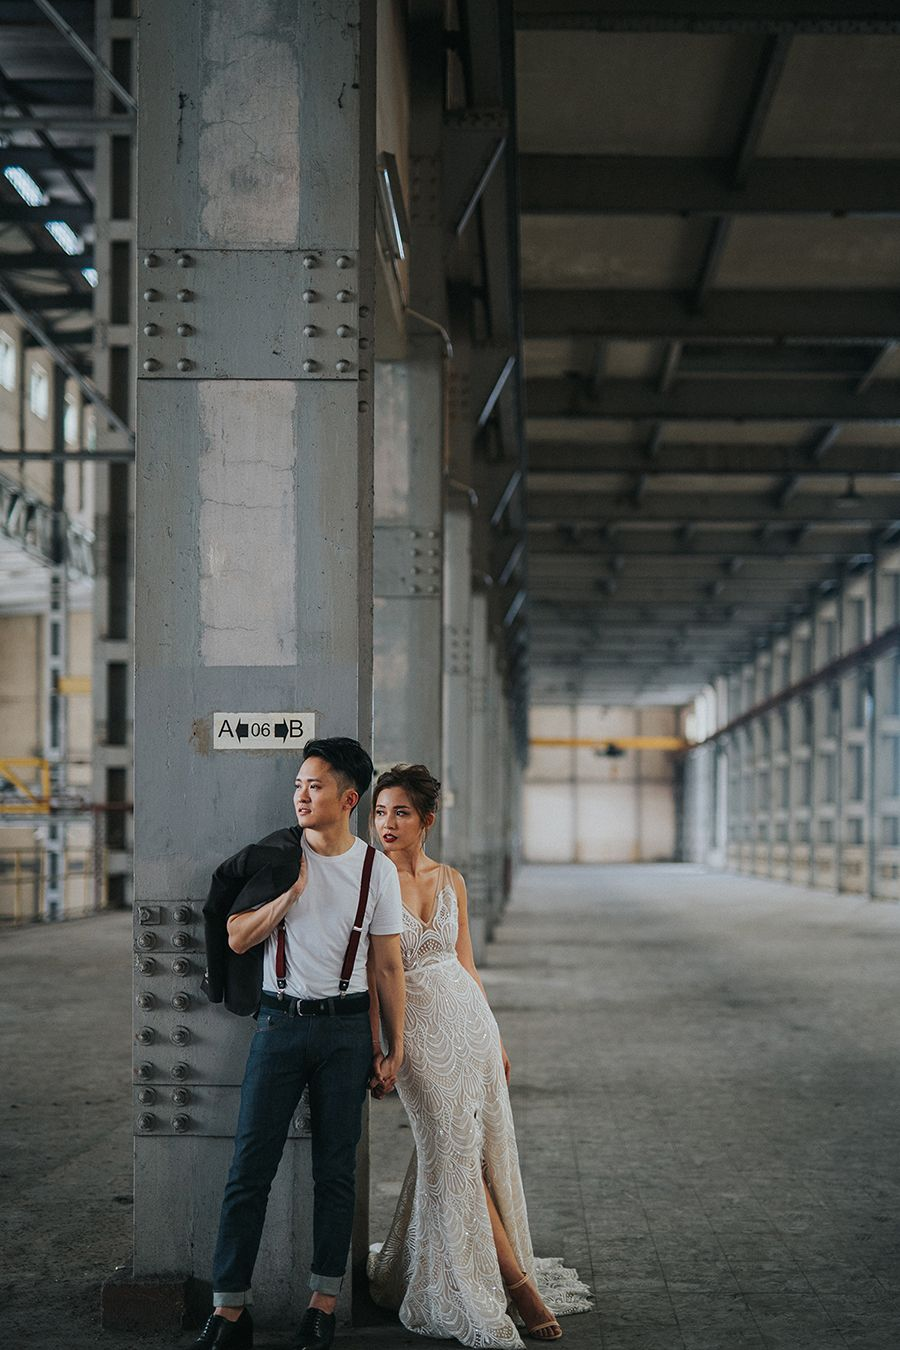 Most Beautiful Indoor Pre Wedding Photography Locations In Singapore Part 1 Prewedding Photography Pre Wedding Wedding Photography